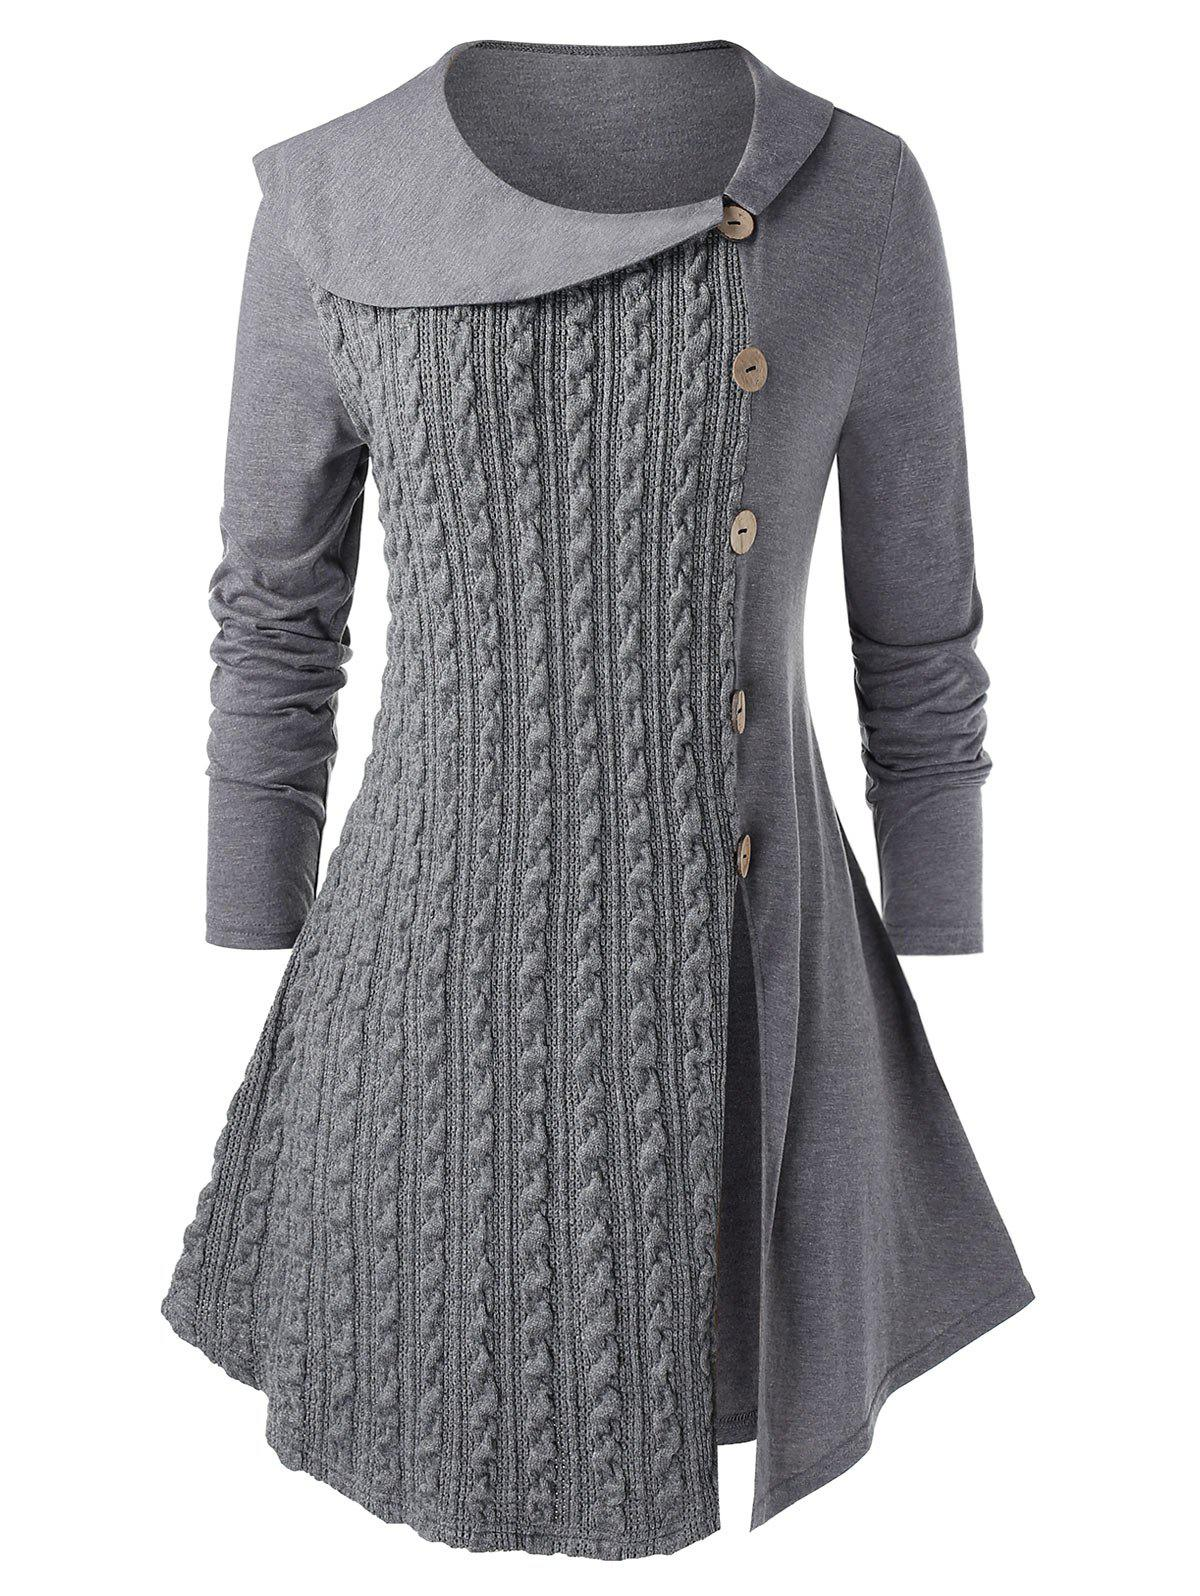 Plus Size Mock Buttons Slit Marled Cable Knit Top - GRAY 2X